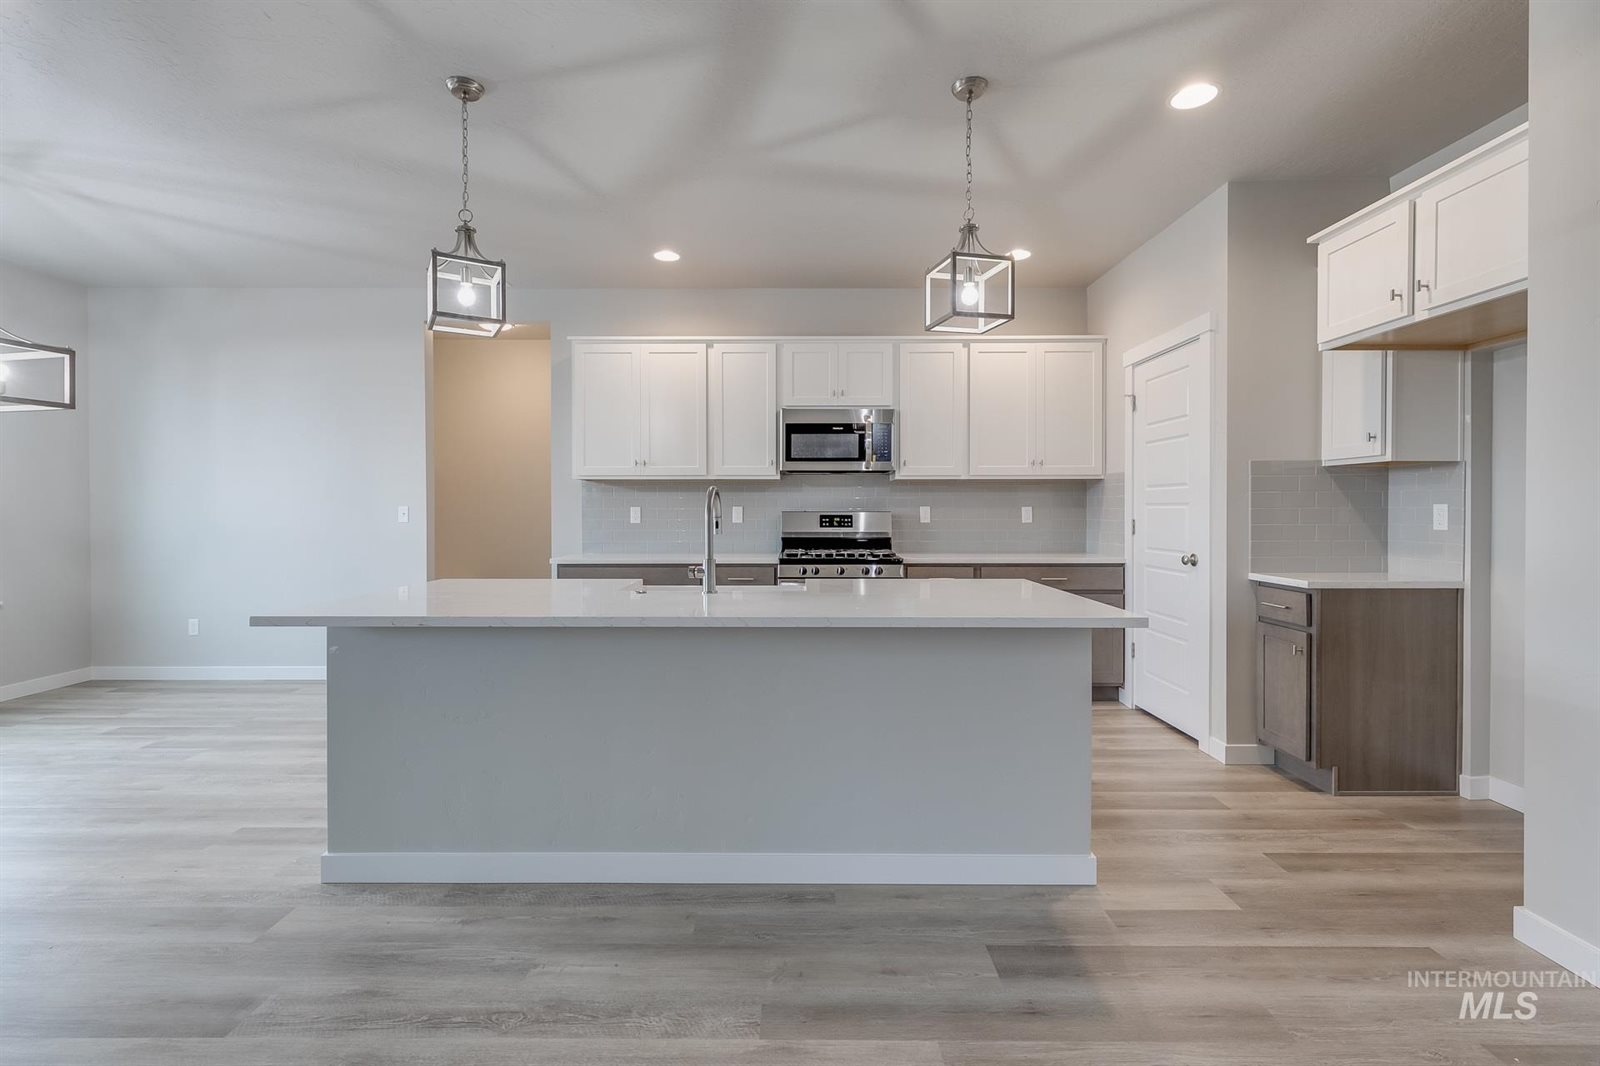 2059 West Wood Chip Dr, Meridian, ID 83642